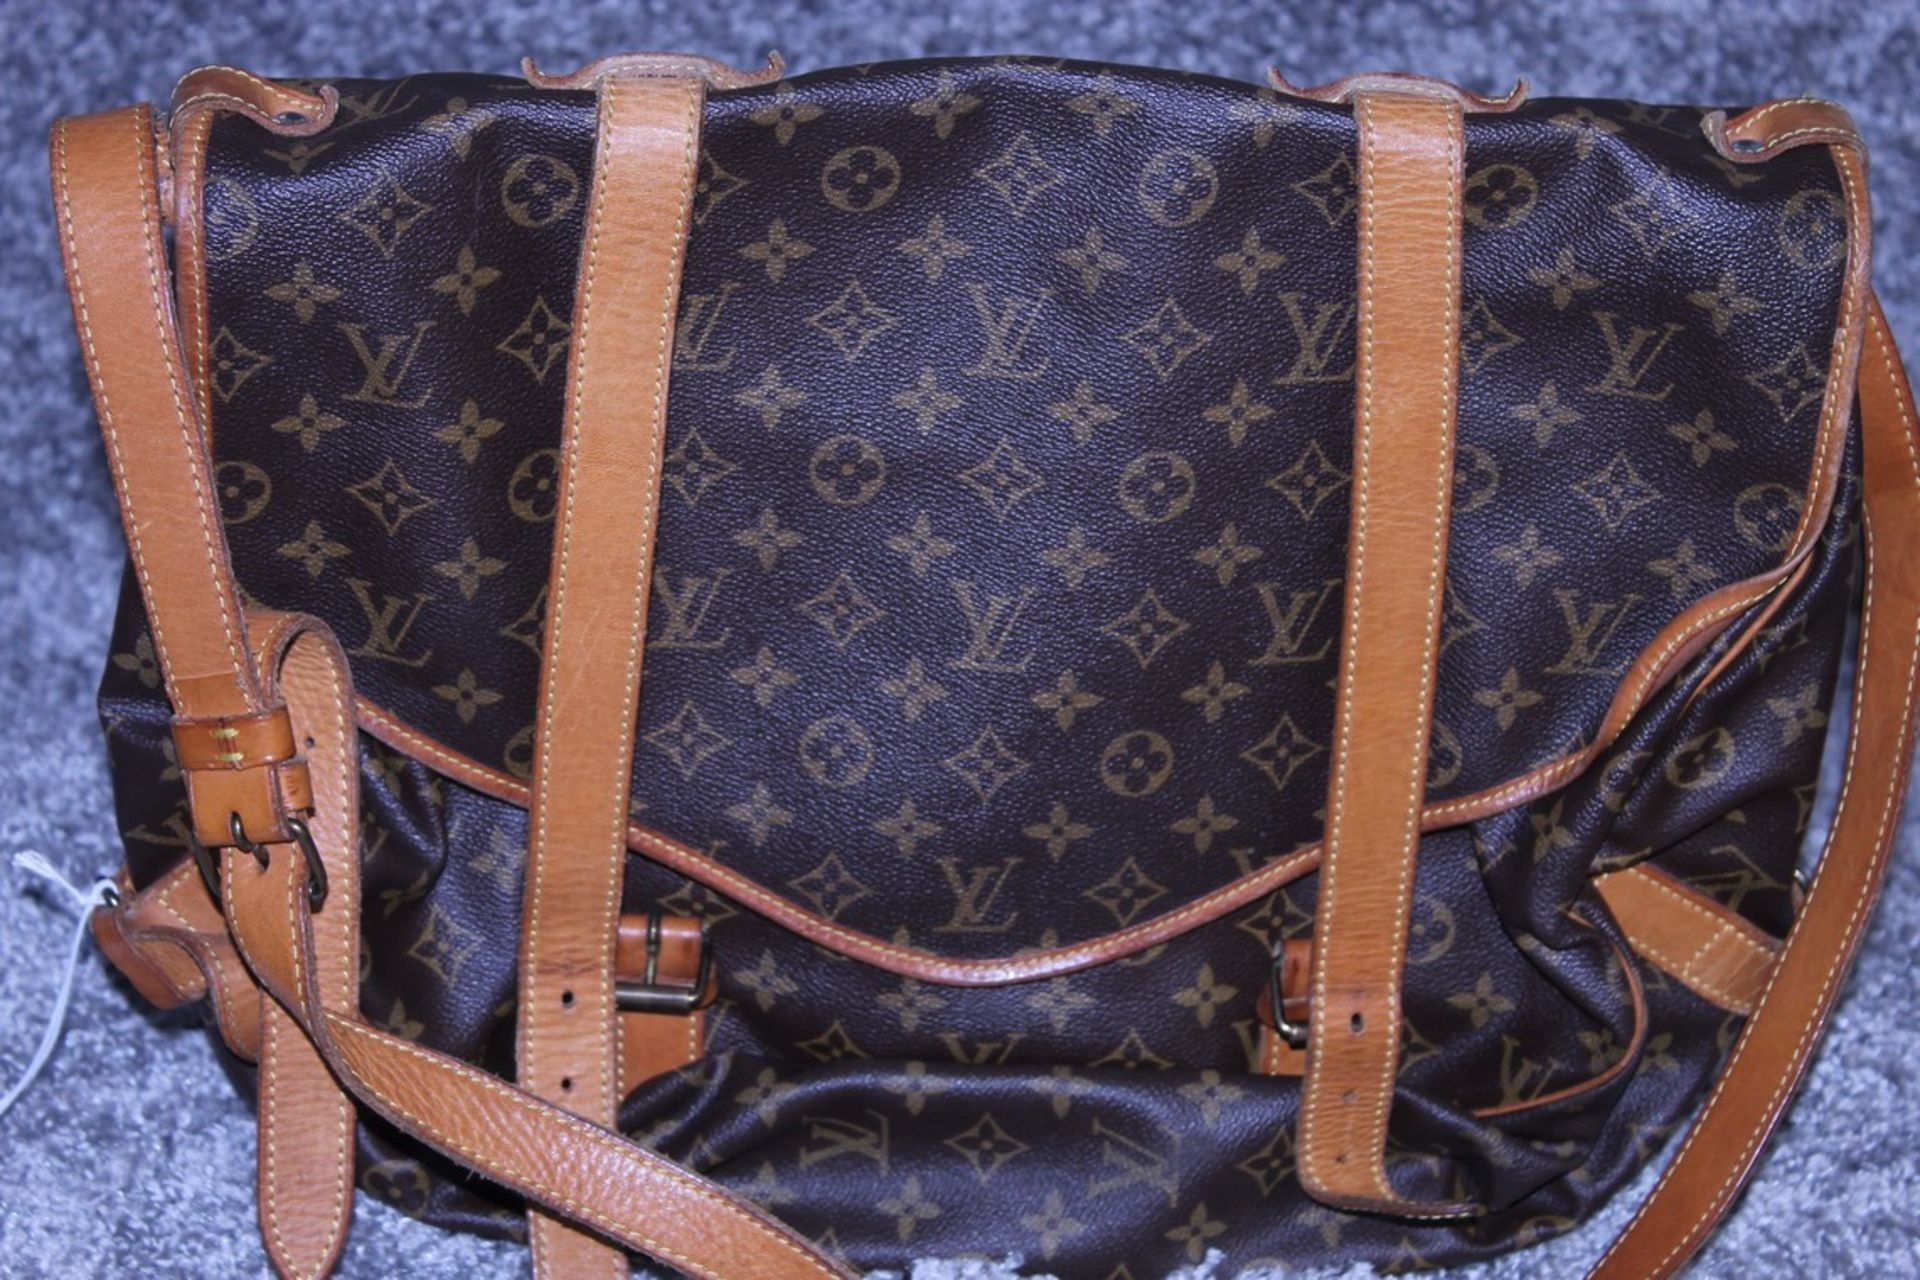 RRP £1,500 Louis Vuitton Saumur Double Strap Shoulder Bag, Brown Monogram Canvas, Vachetta - Image 2 of 3